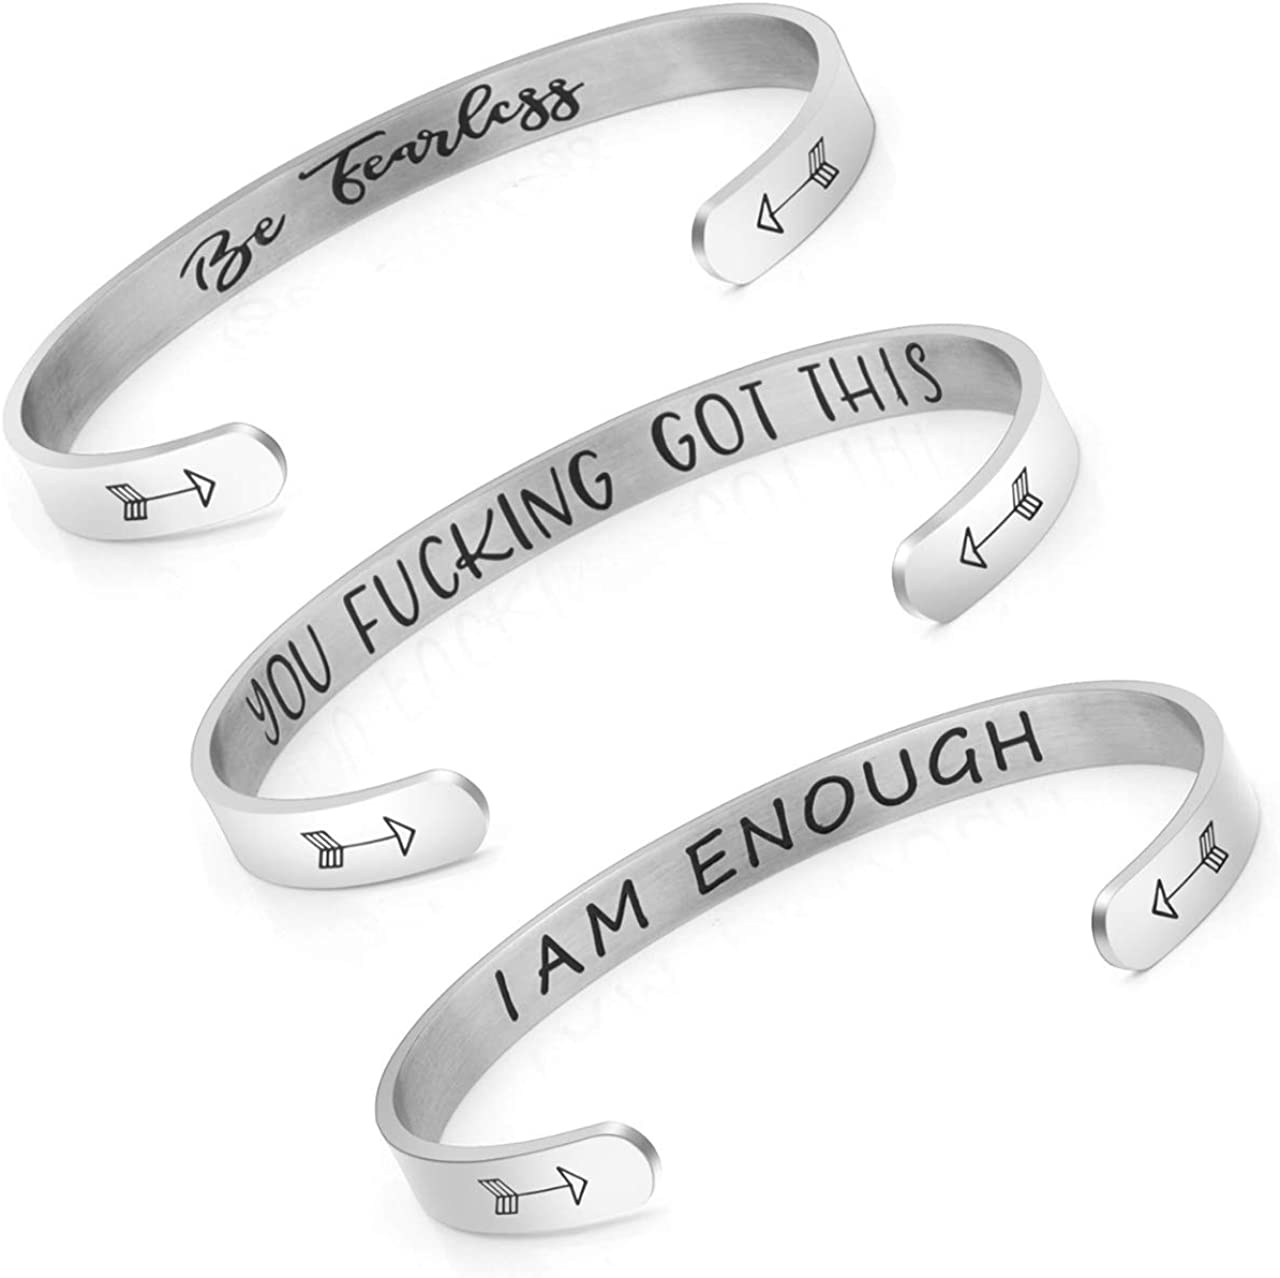 PiercingJ 3pcs Custom Engraving Inspirational Gifts You Fking Got This/Be Fearless/I Am Enough Stainless Steel Open Cuff Hidden Message Bracelet, Best Friends BFF Motivational Bangle